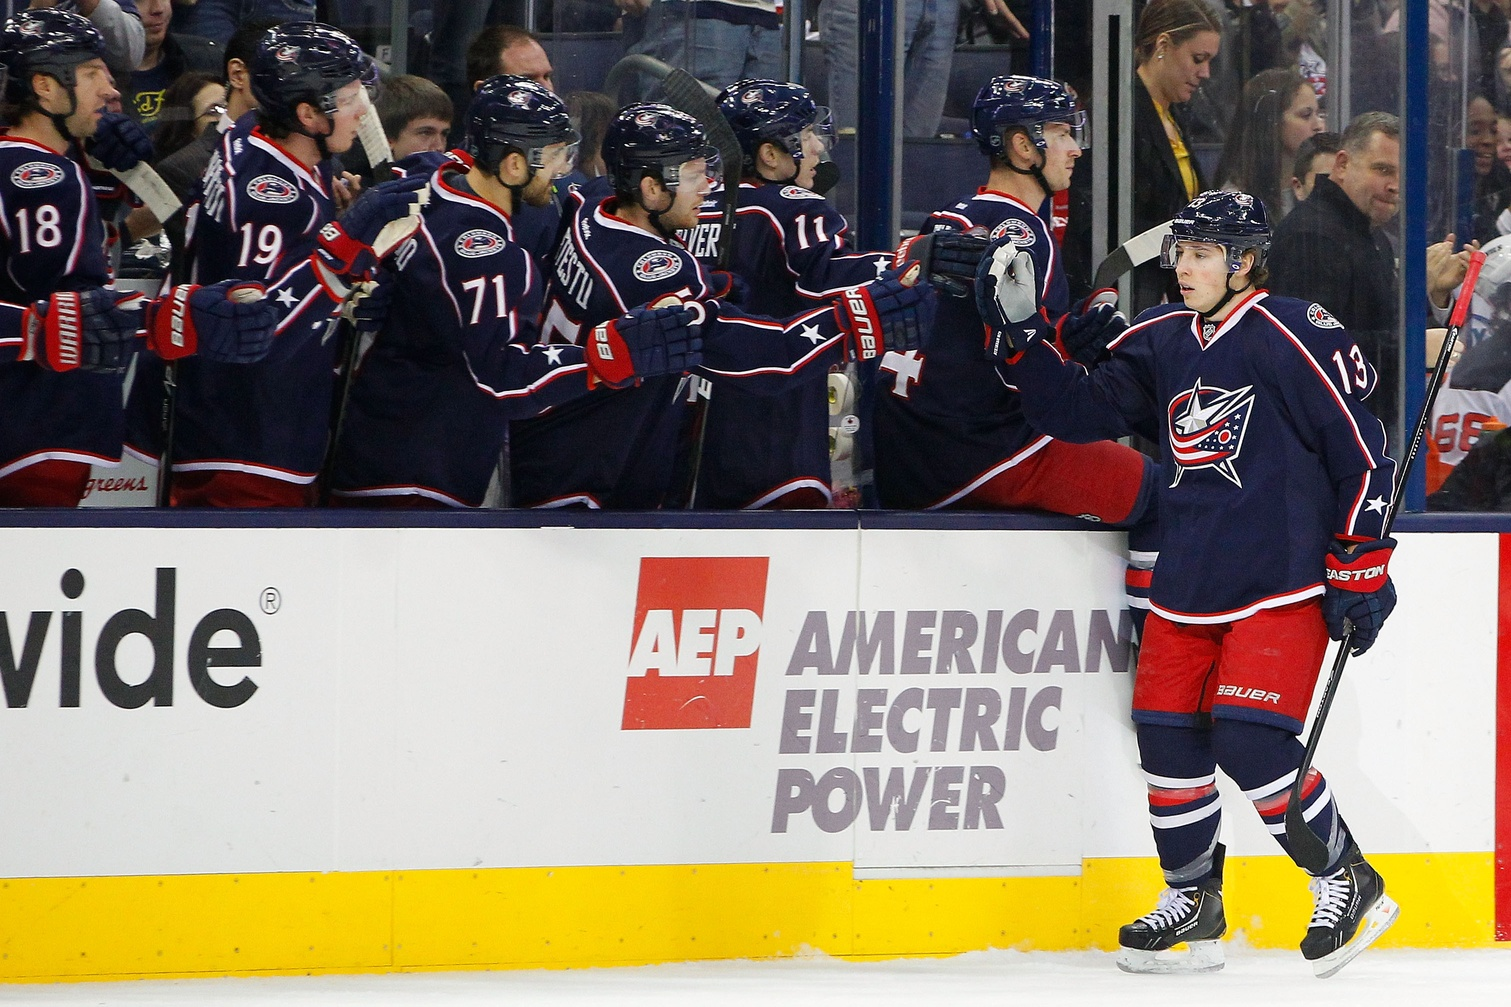 Blue Jackets will battle the Penguins over TV territory rights